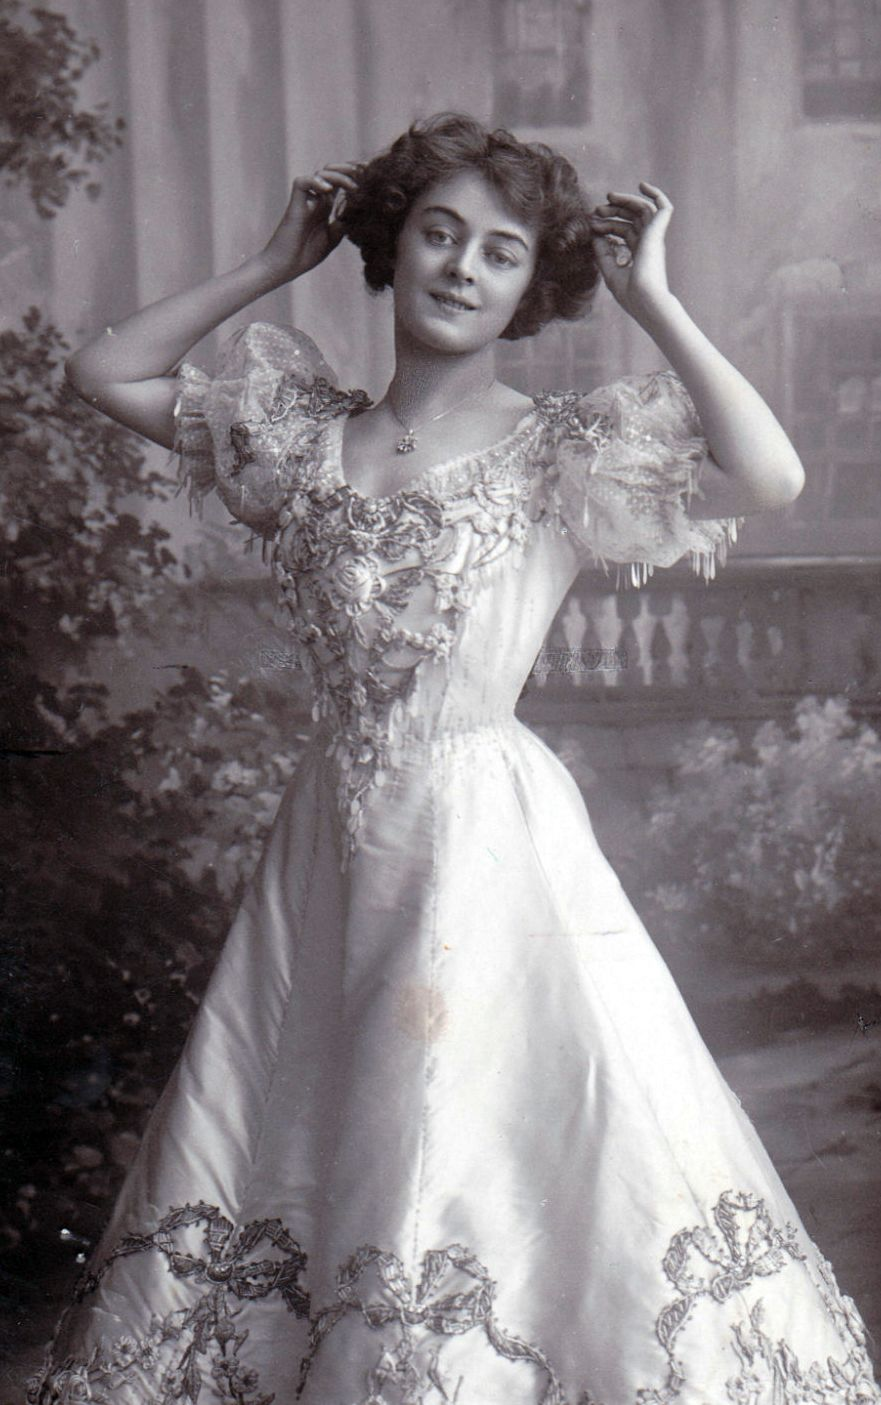 Adrienne Augarde (18821913) was a British actress and